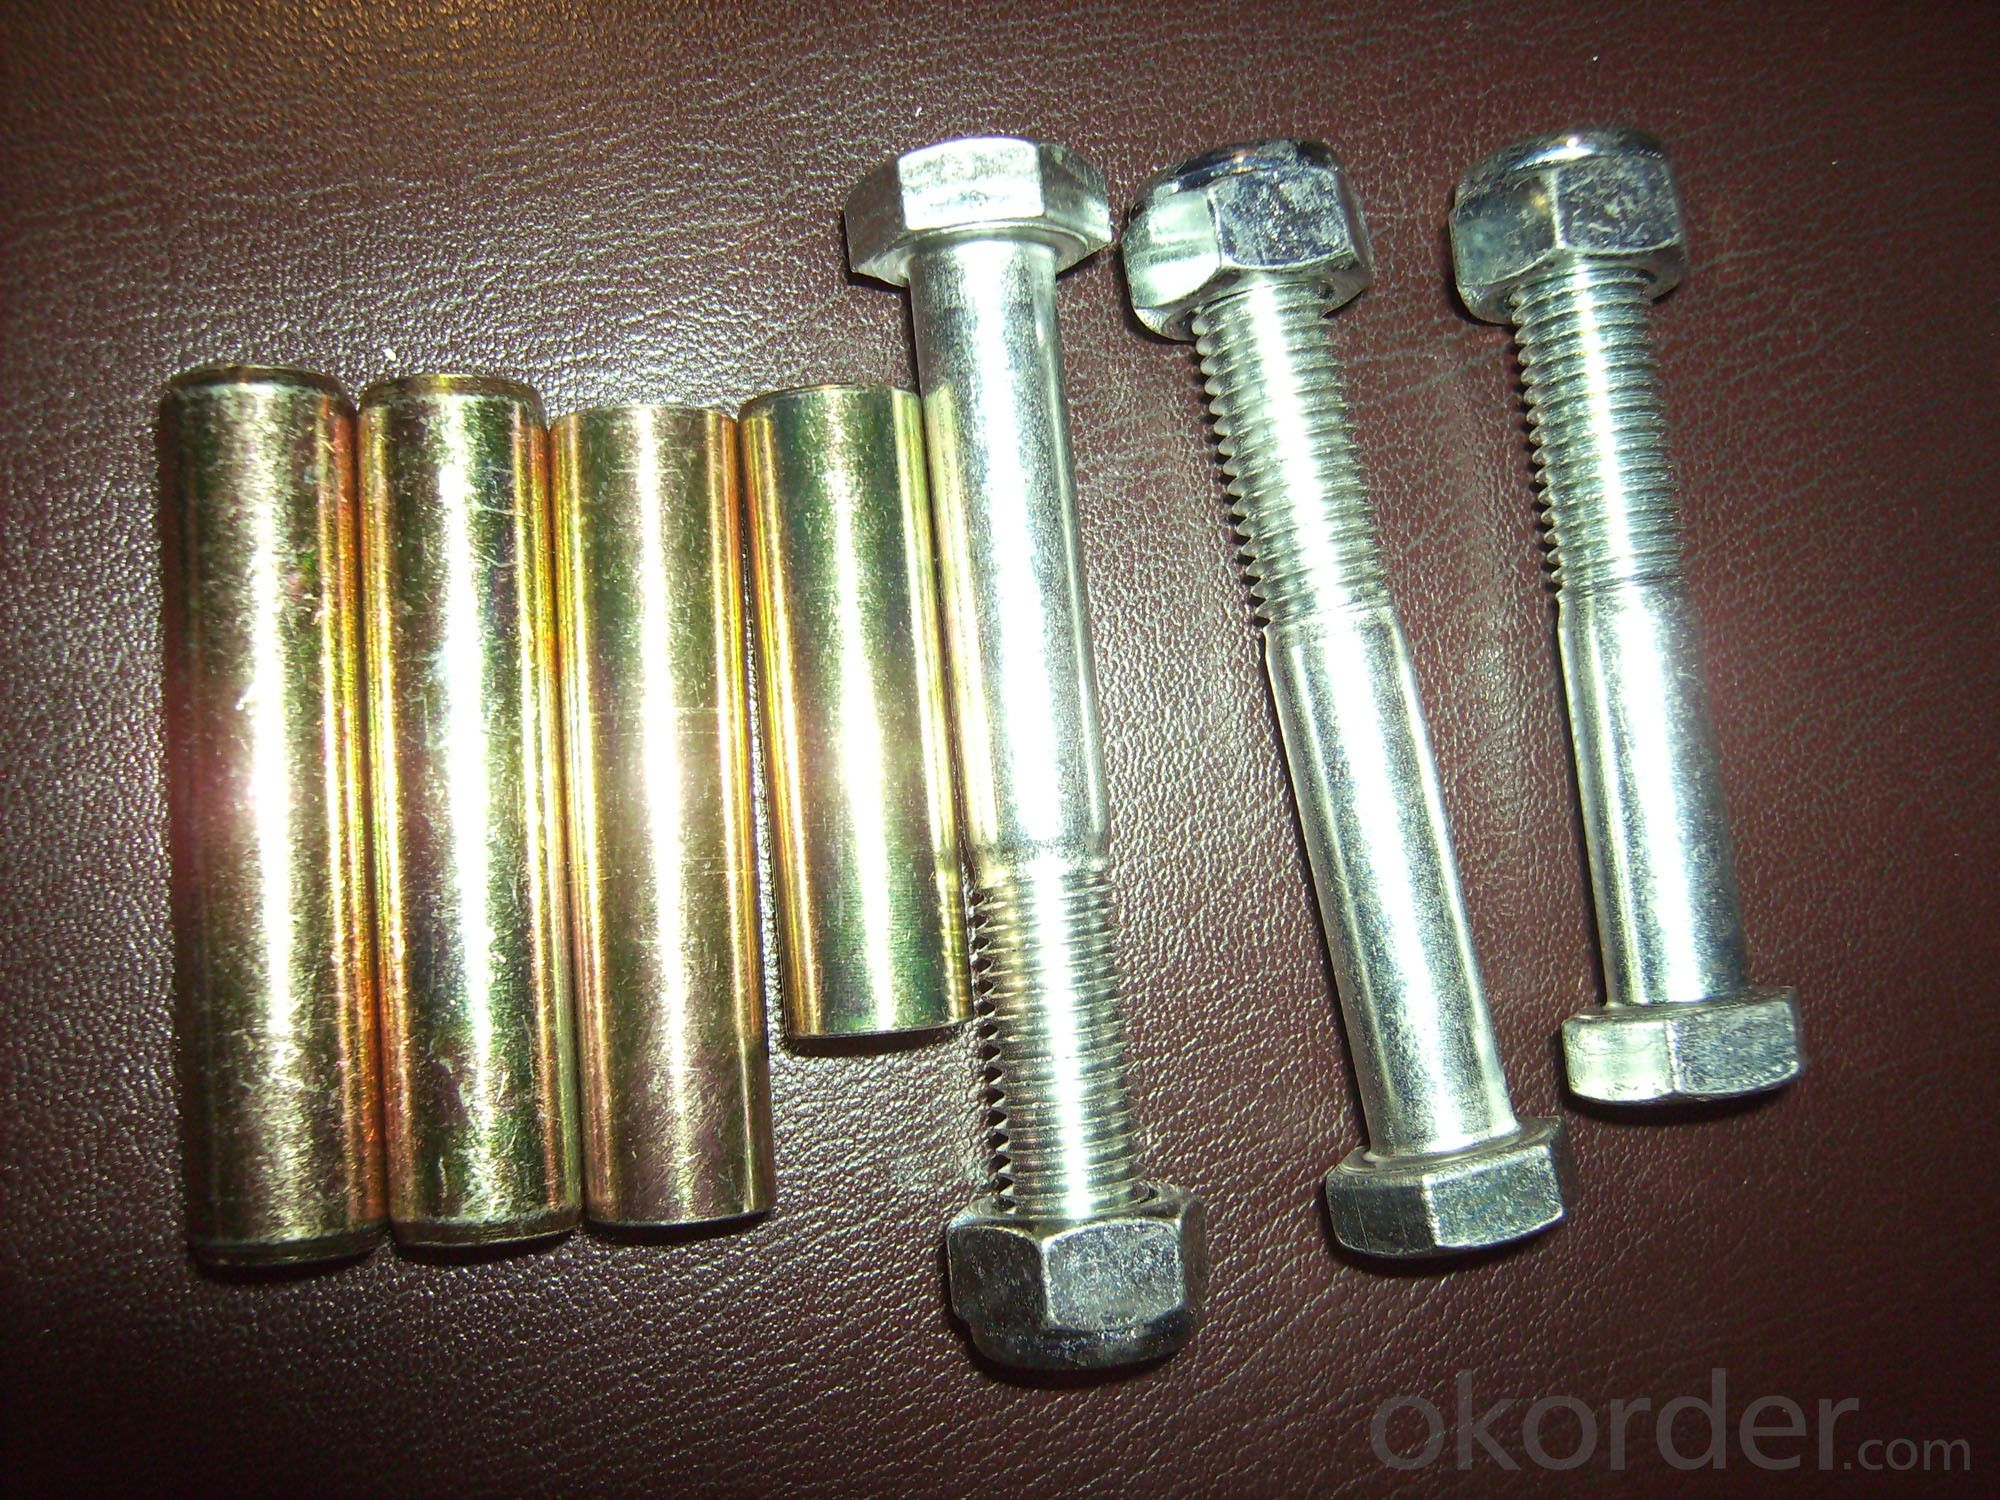 SLEEVE ANCHOR&WEDGE ANCHOR with hex nut  cnbm brand